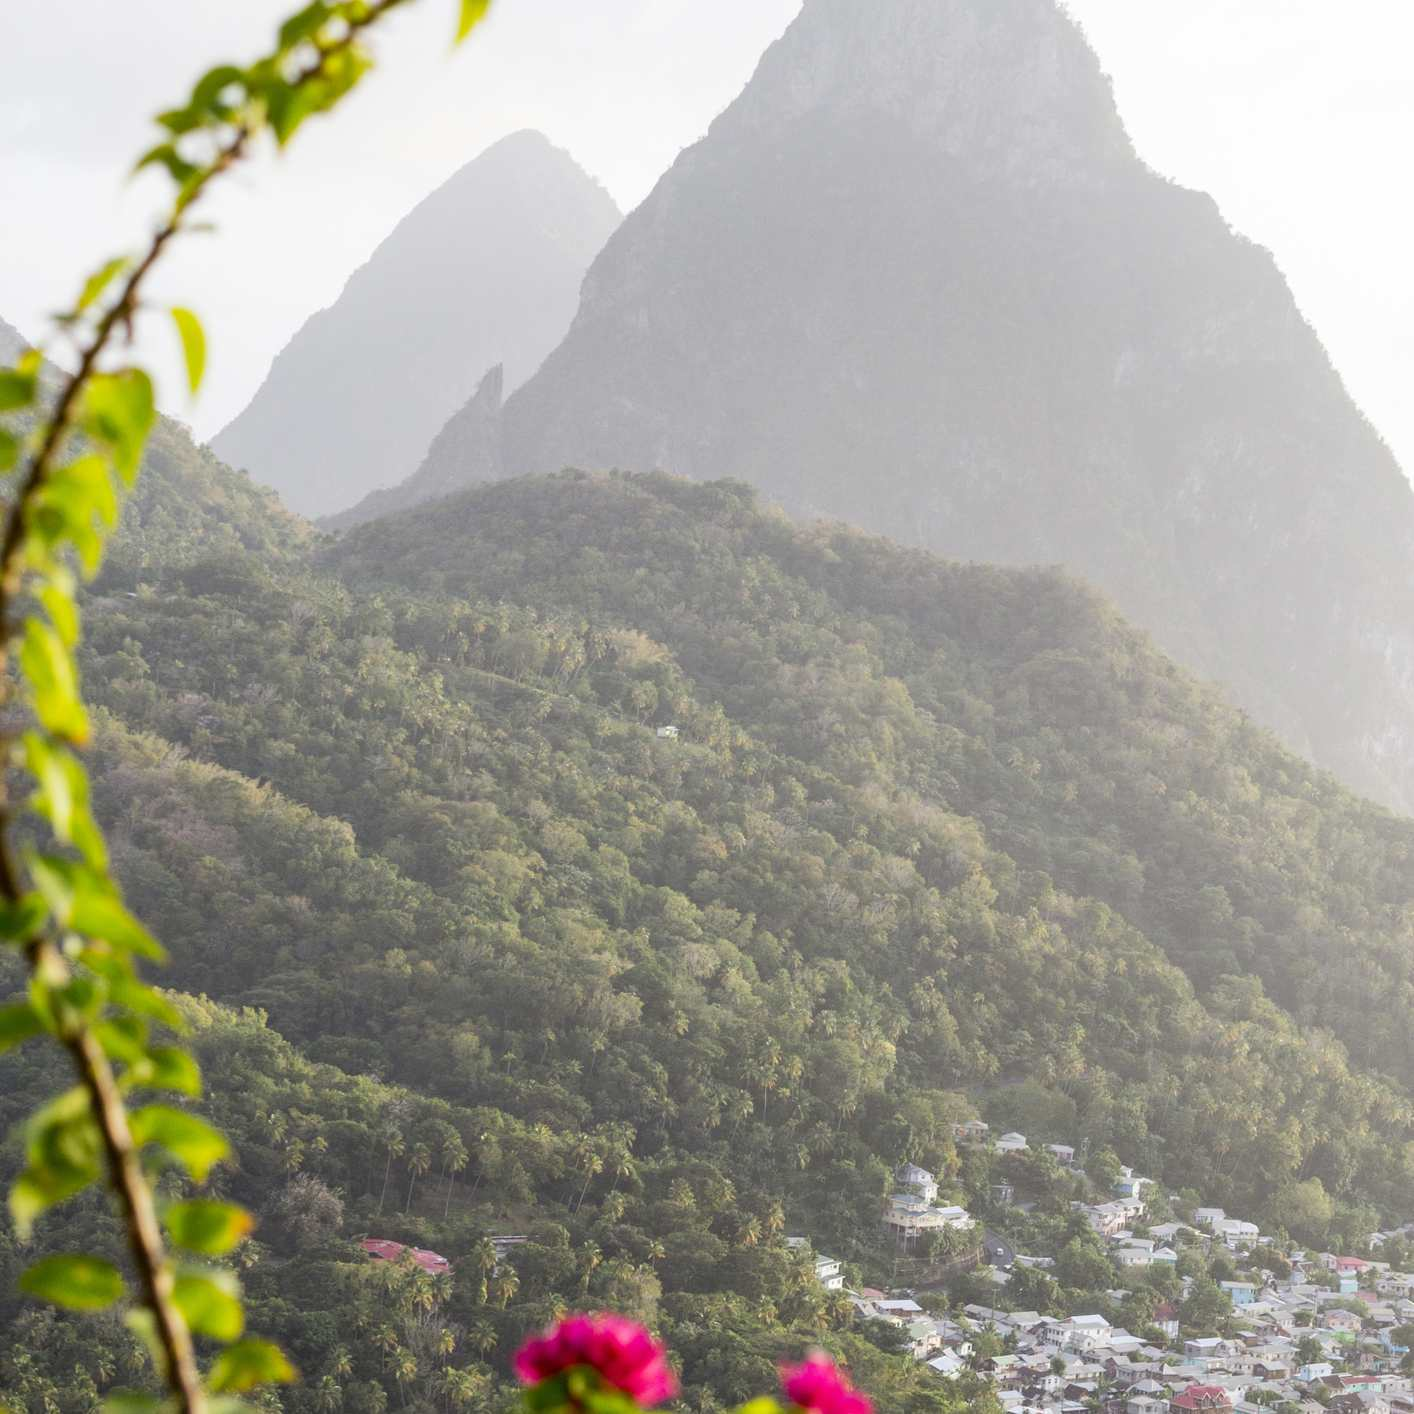 The Pitons mountains and Soufriere with bougainvillea in foreground